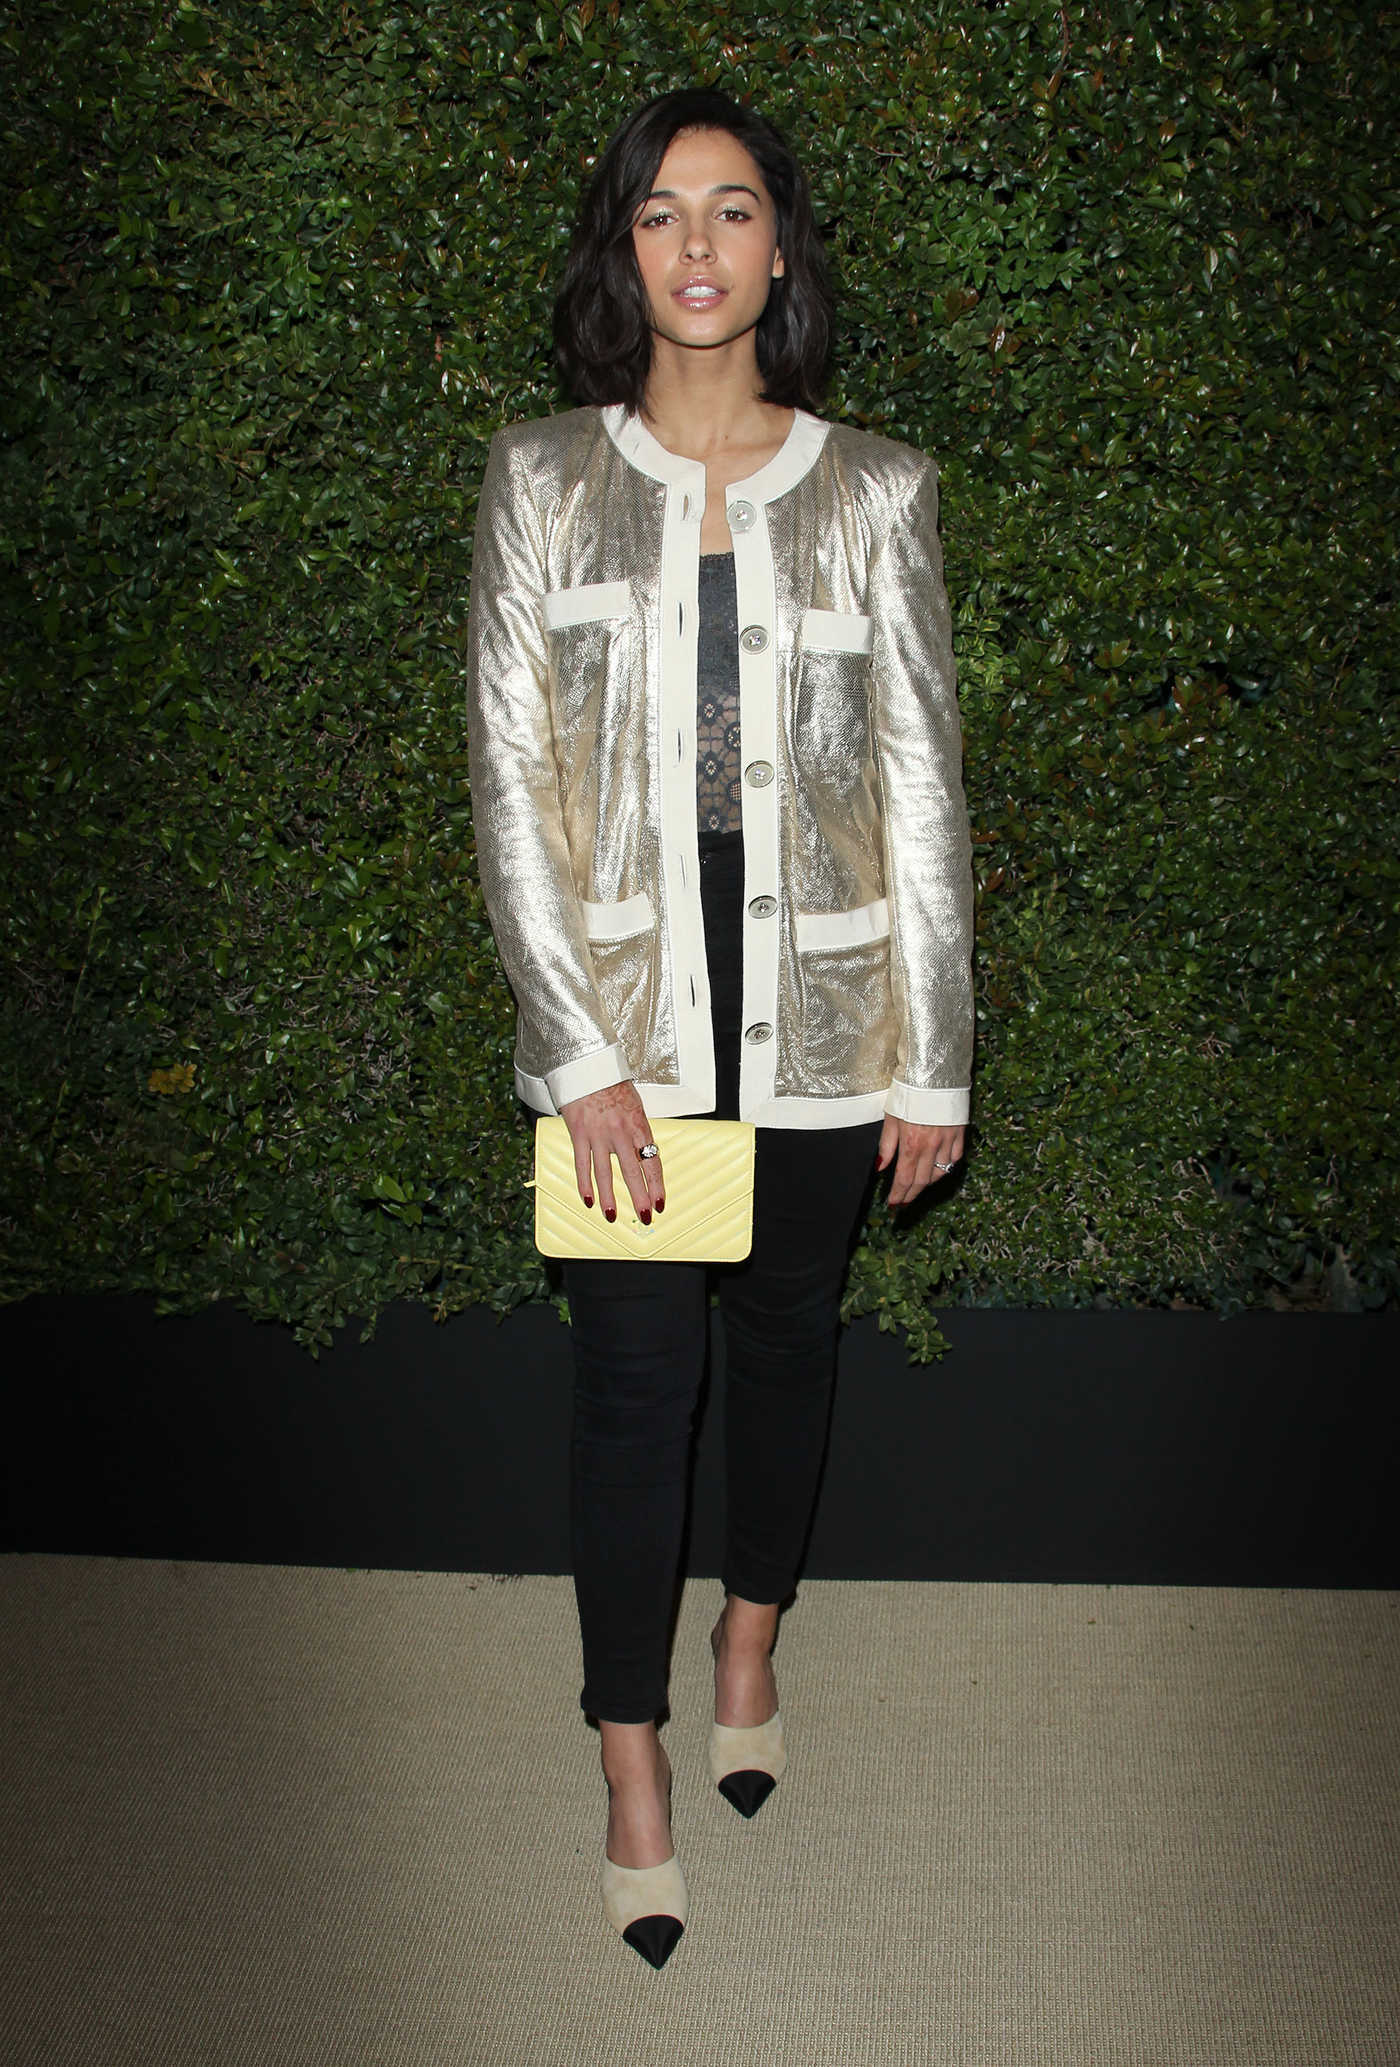 Naomi Scott at the Chanel Dinner Hosted by Pharrell Williams in Los Angeles 04/06/2017